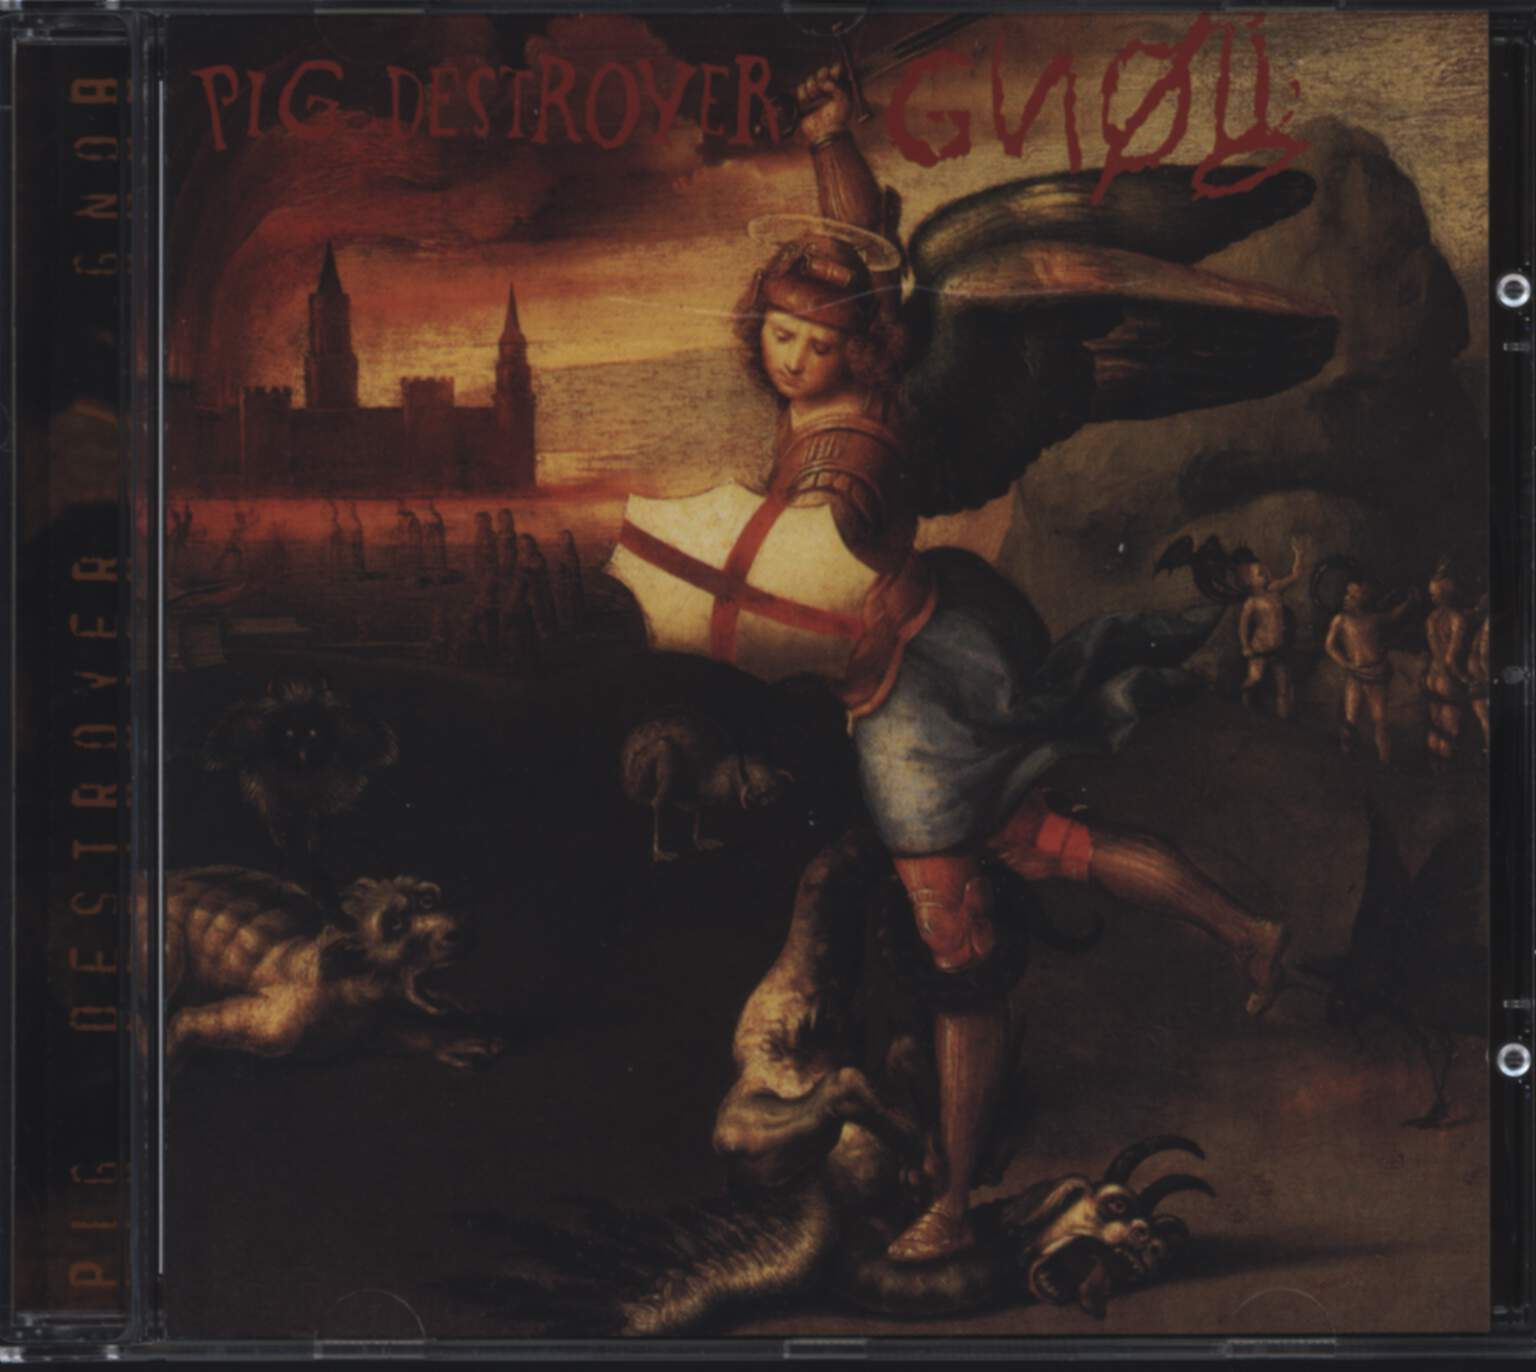 Pig Destroyer: Pig Destroyer / Gnob, CD